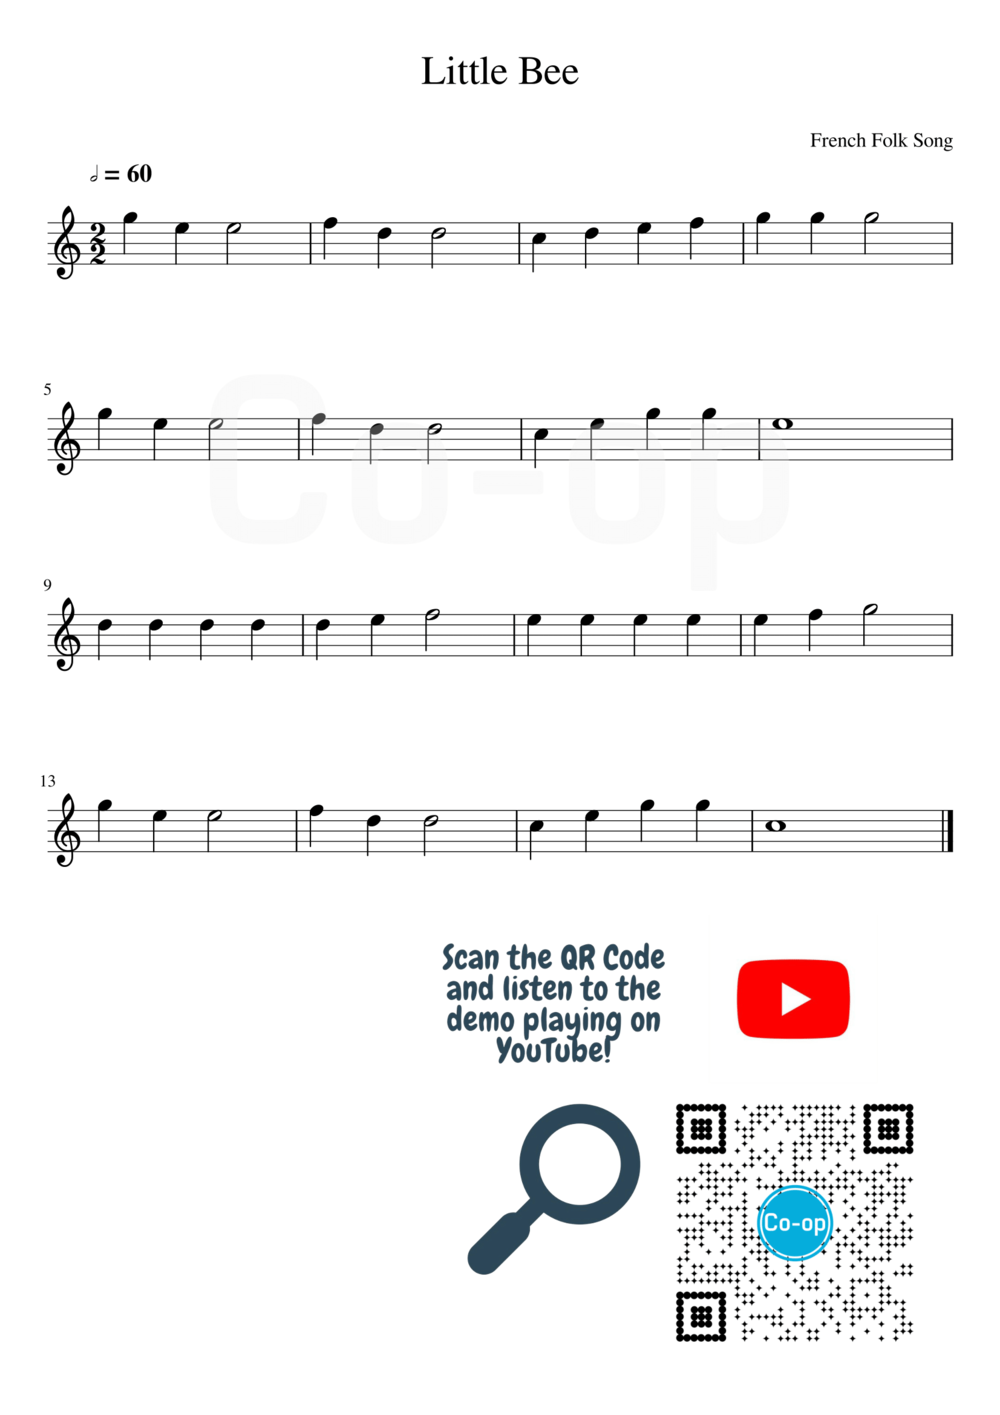 Little Bee | Staff Notation | Free Sheet Music